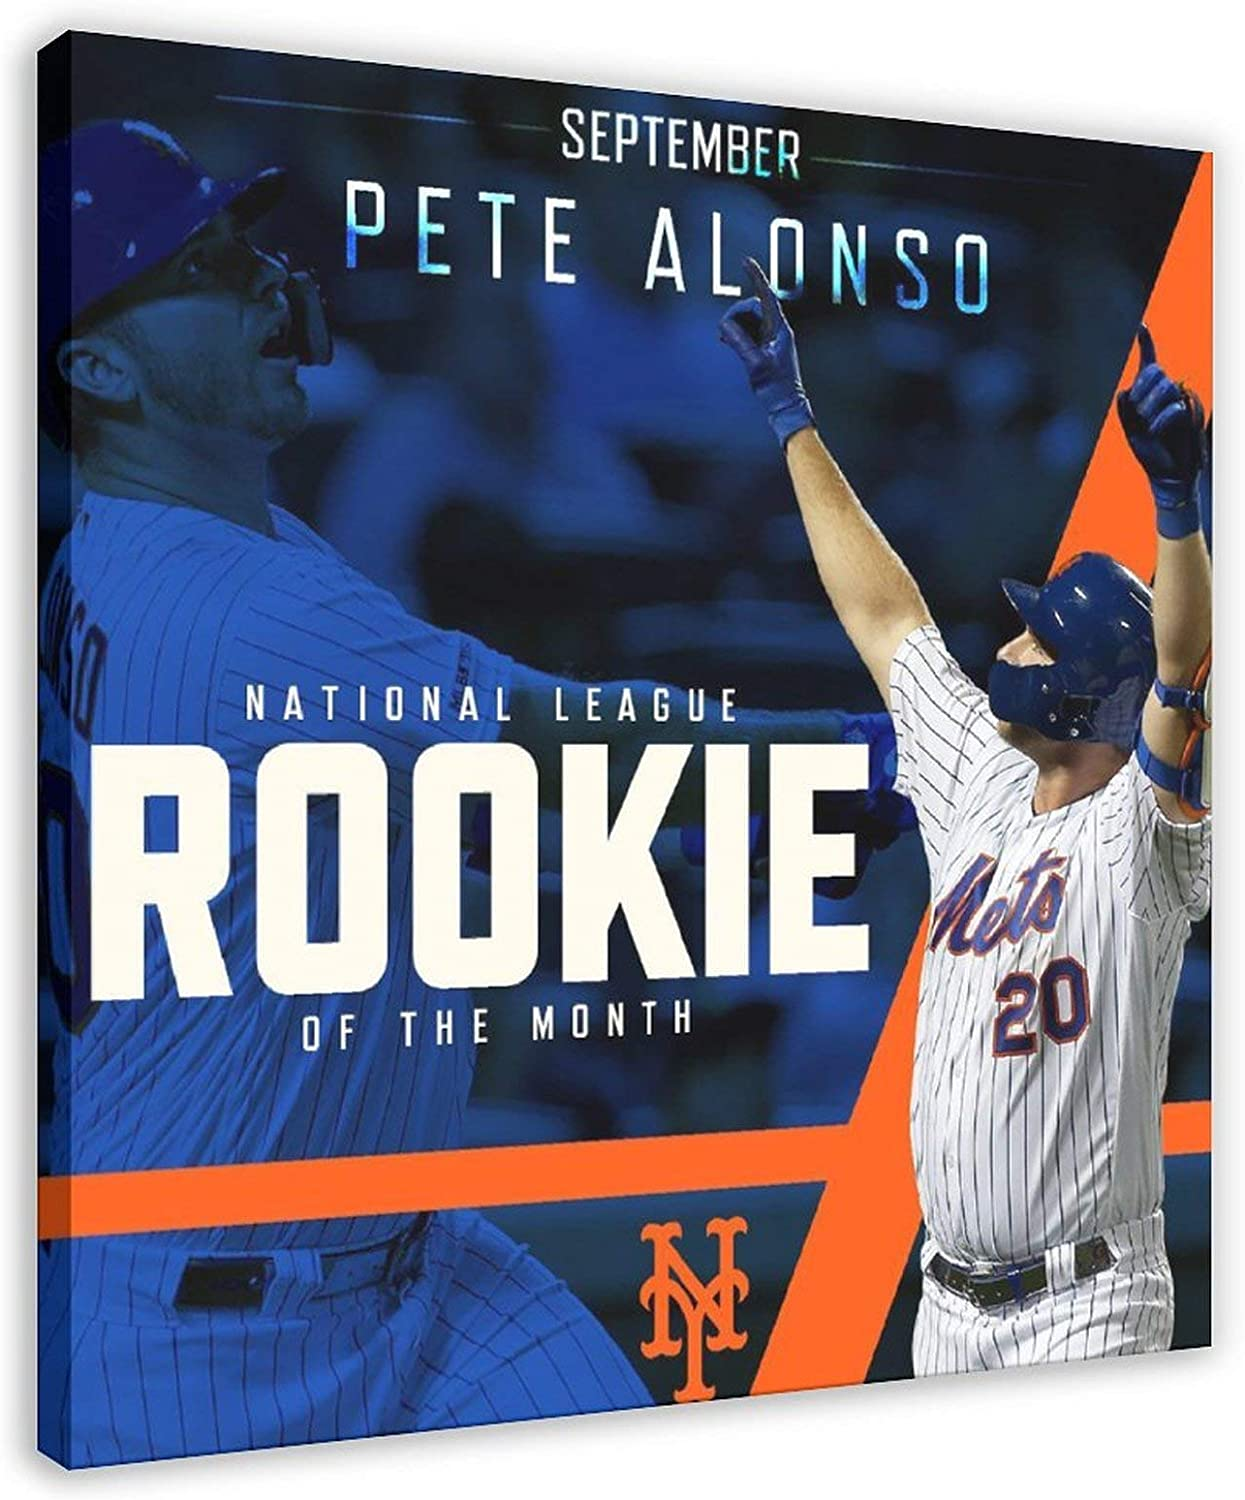 American League Elegant Baseball Star Players Alonso Pete Print Sports P NEW before selling